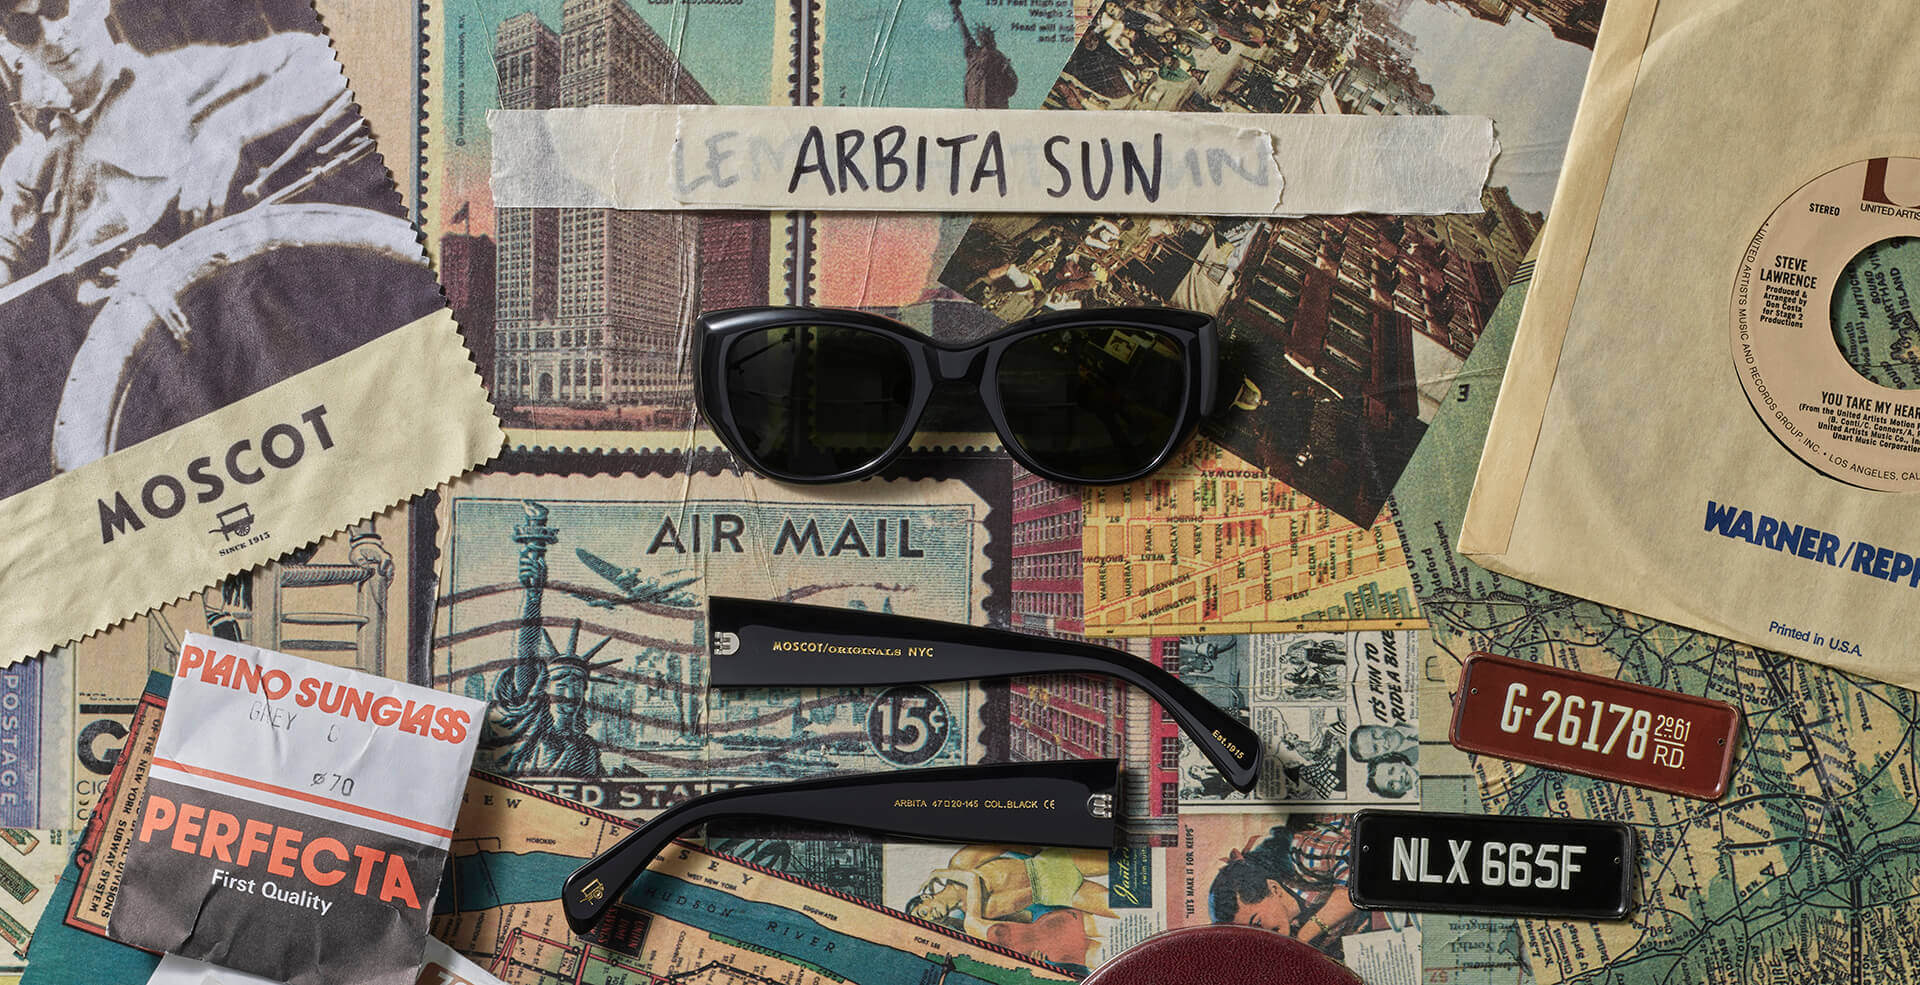 Disassembled ARBITA SUN frame